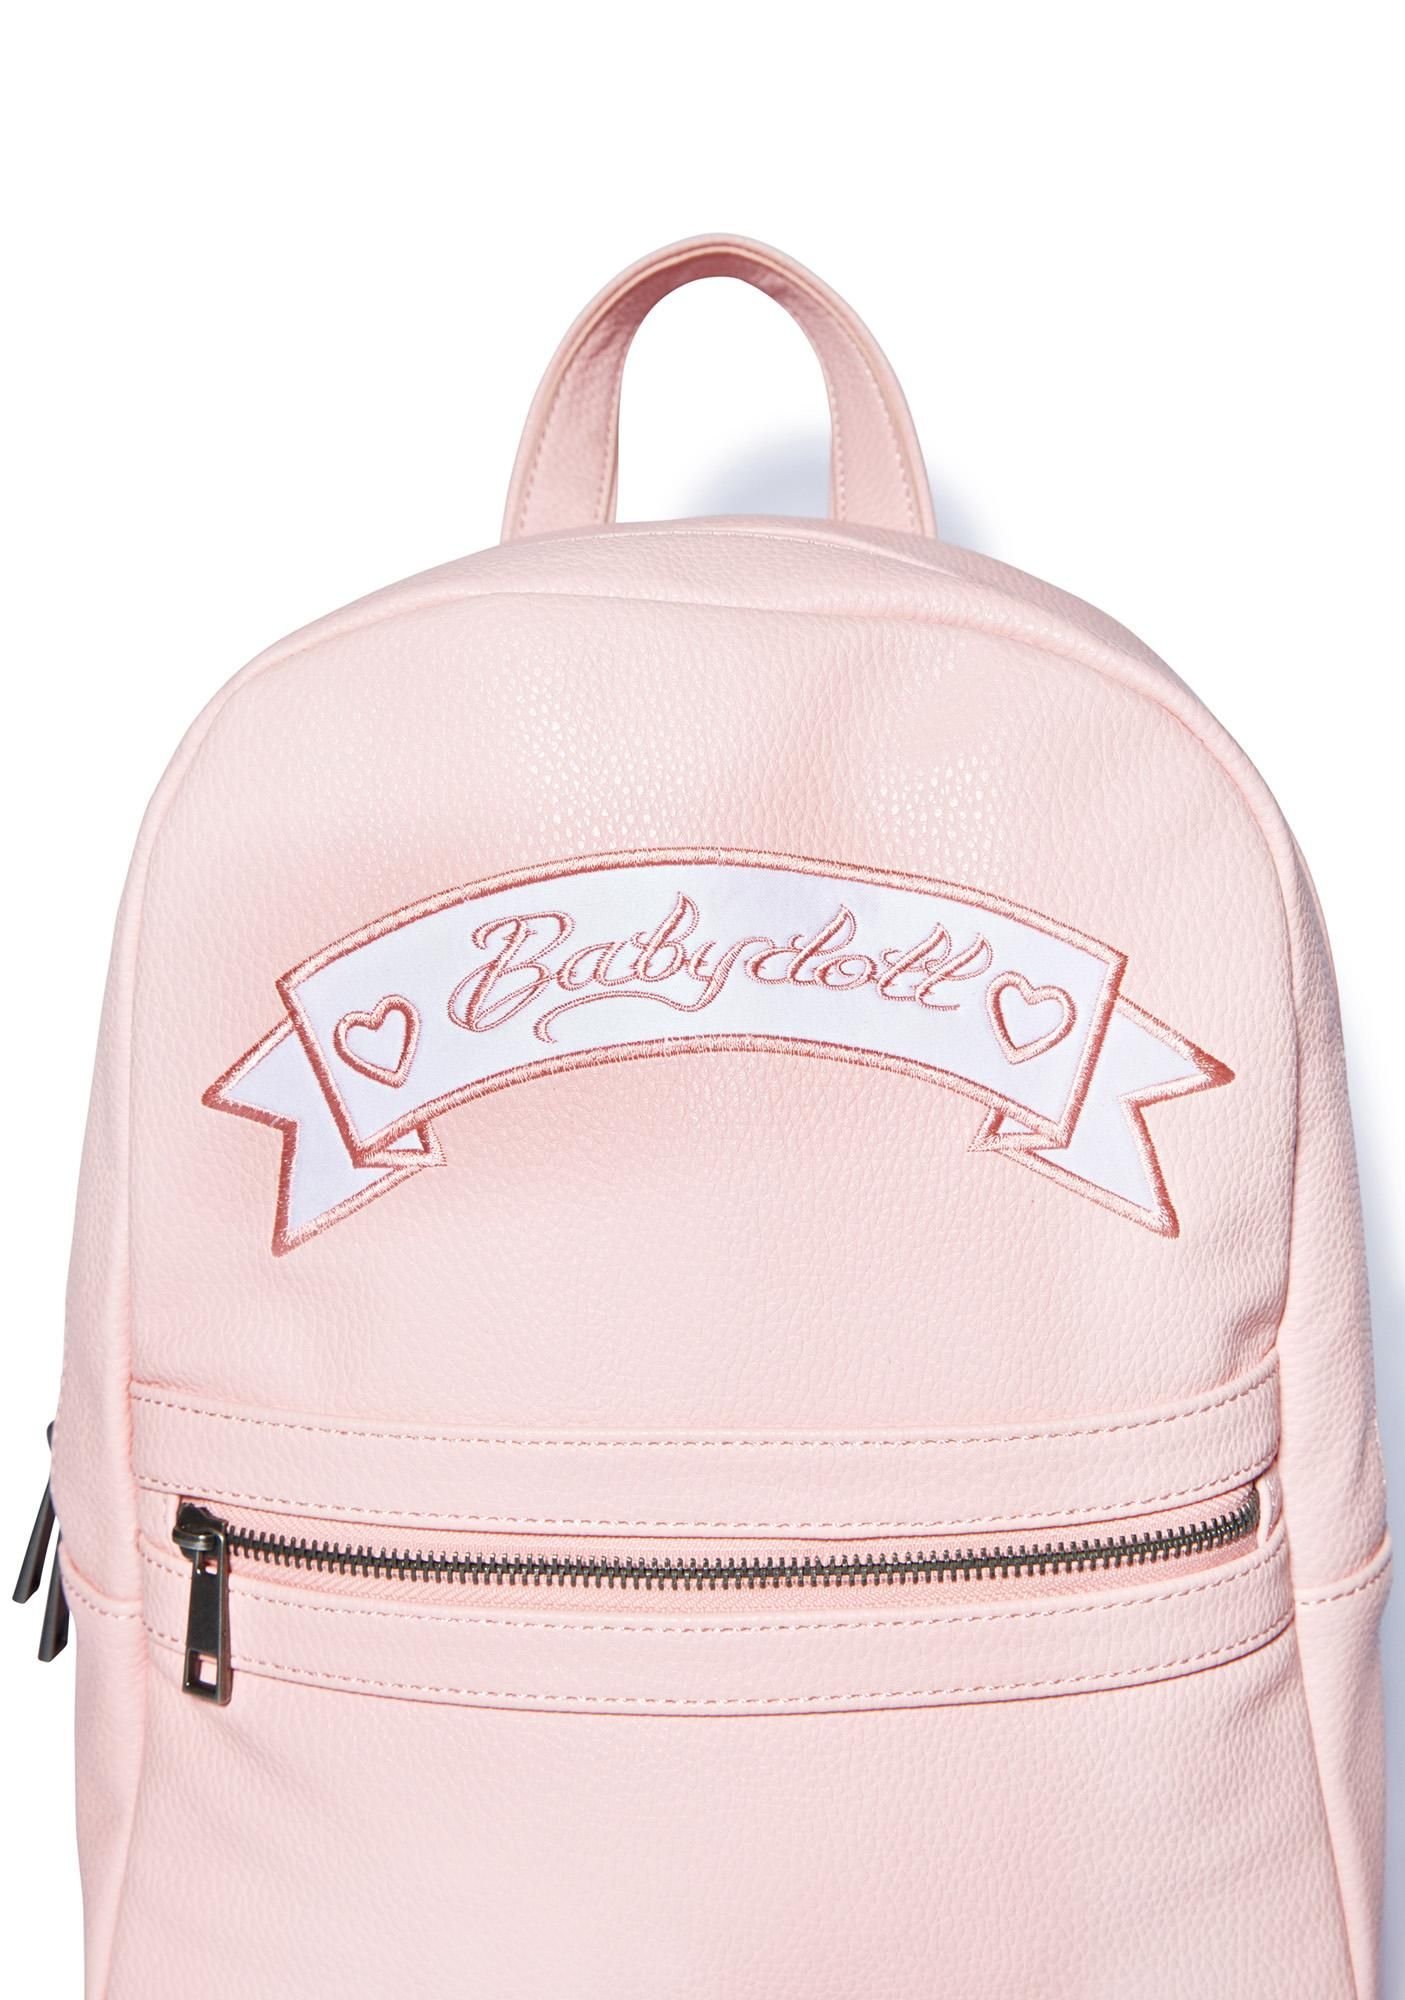 717de8ae3610 Sugarbaby Babydoll Mini Backpack Faux Leather Backpack